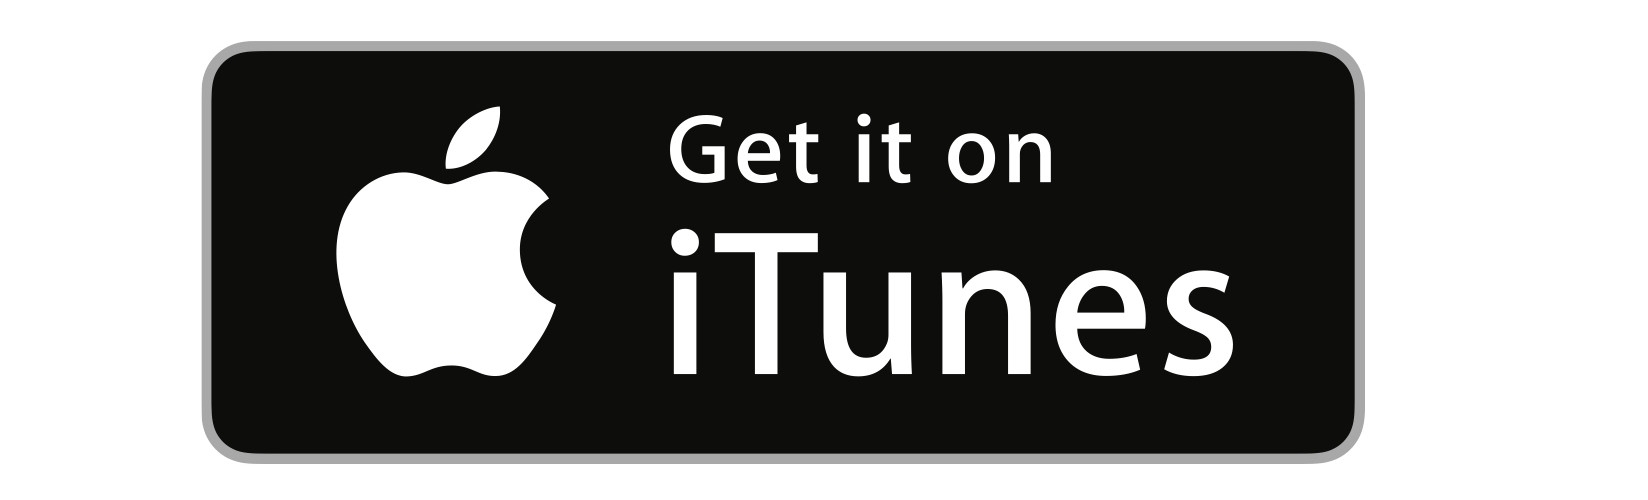 Purchase Stef's Music on iTunes by clicking on the Logo! -